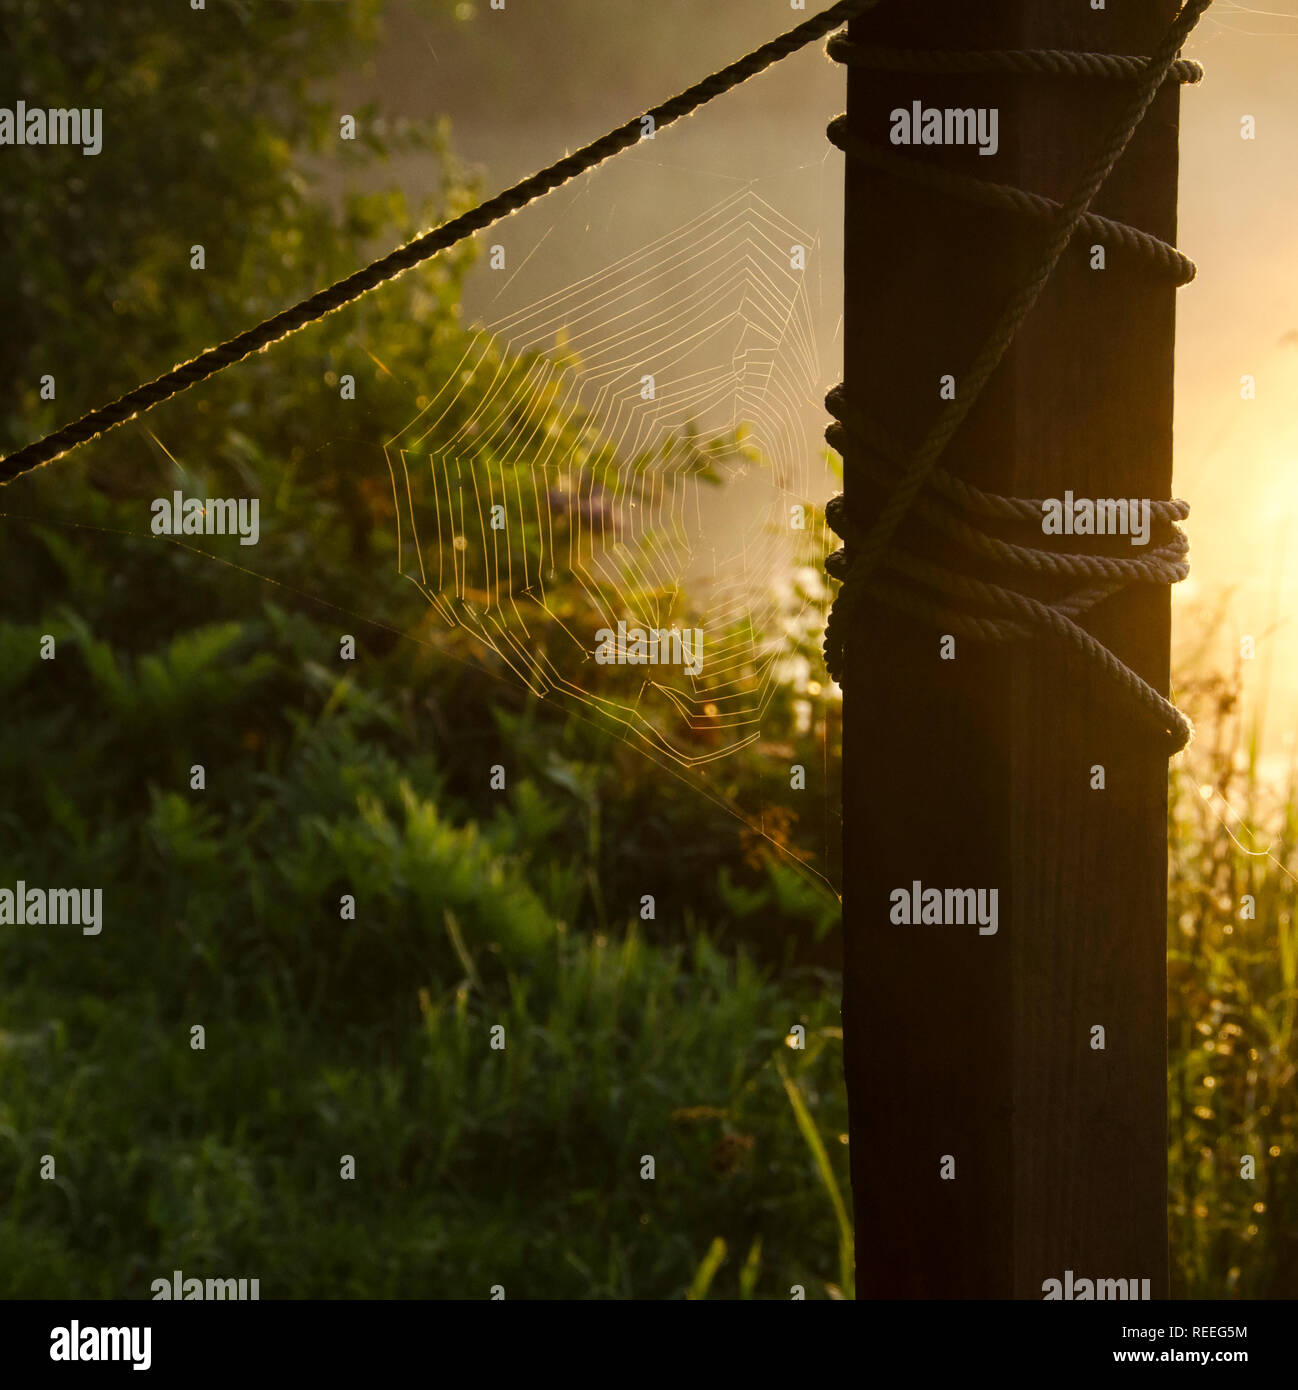 The sun rising behind a pylon lighting up a spider web and rope - Stock Image